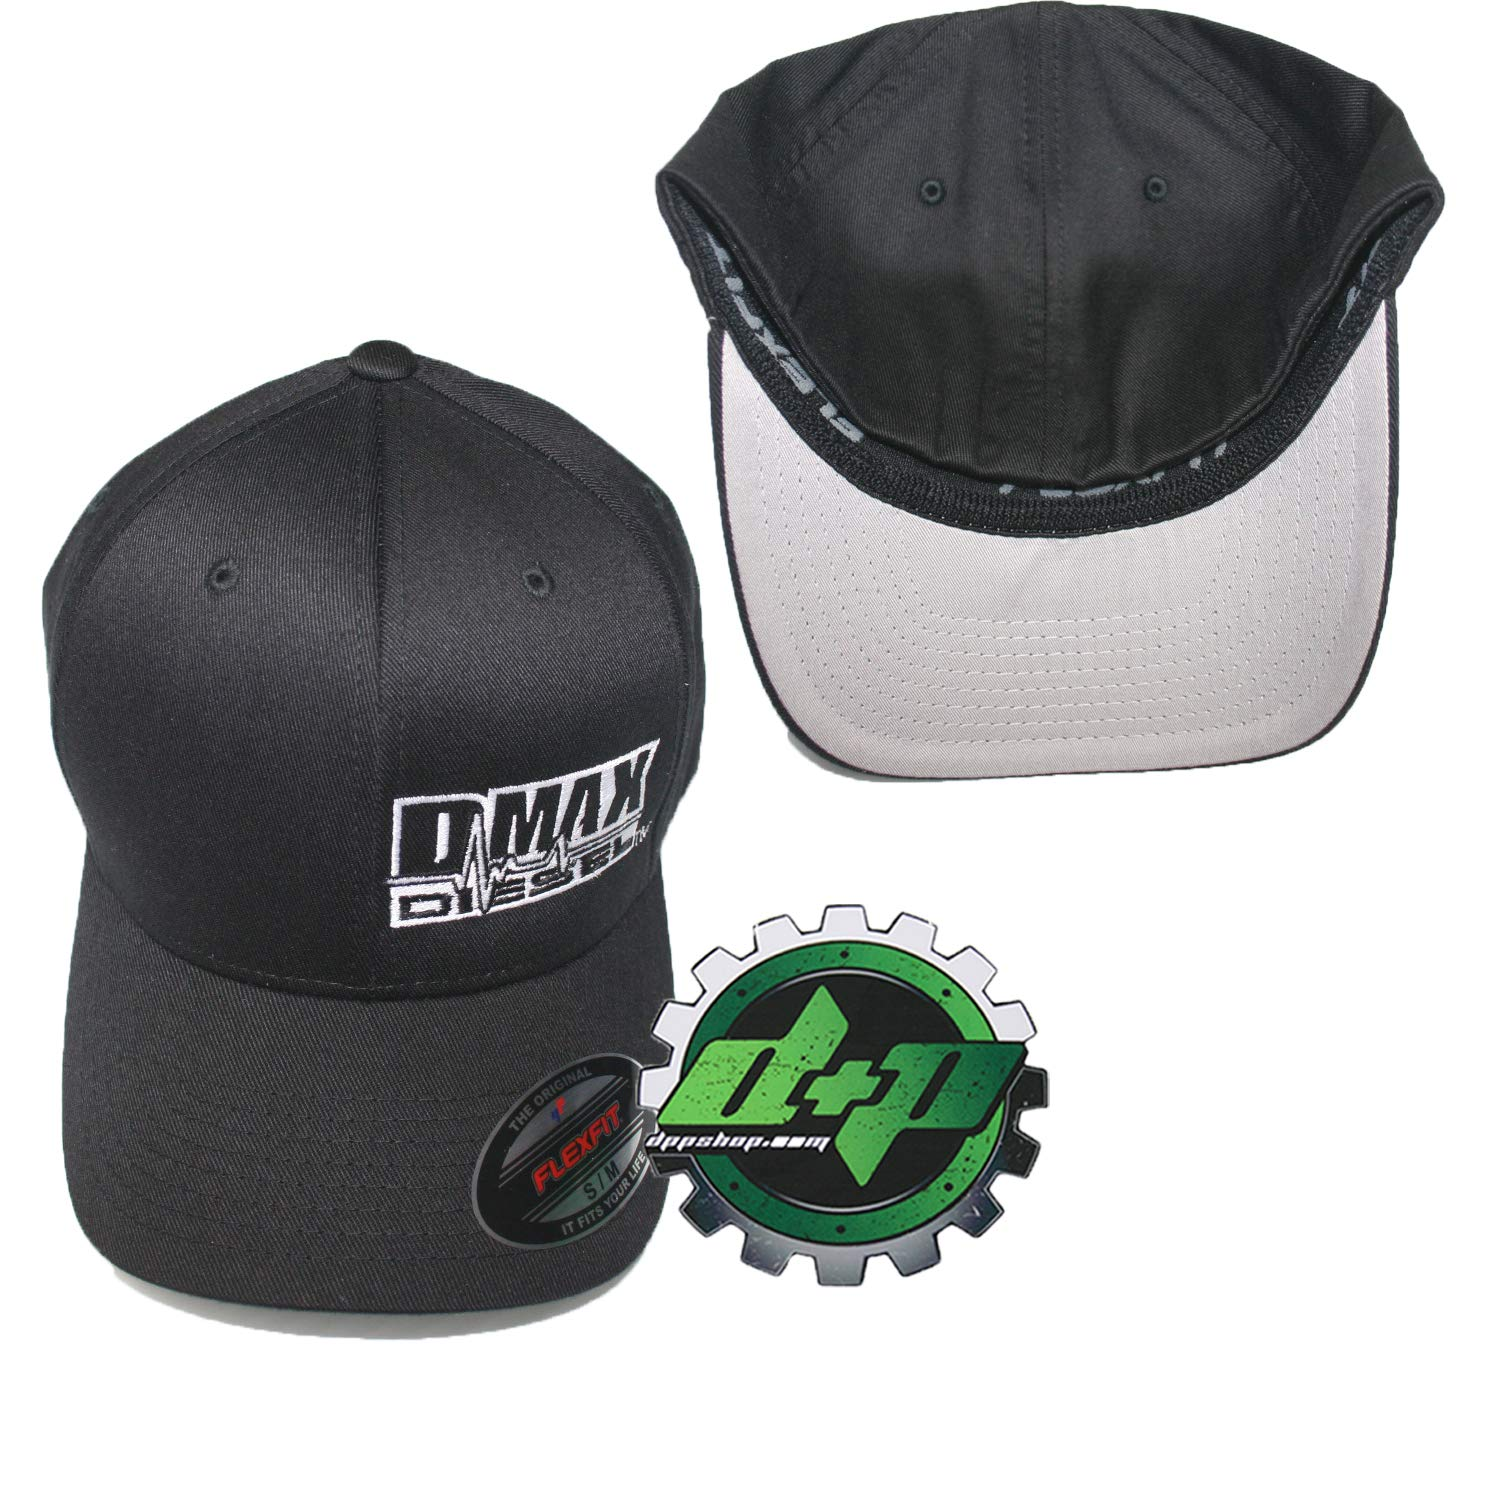 105f1034a57be Amazon.com   S M DMAX Diesel Flexfit Fitted Stretch fit Trucker Black Cap  hat Chevy Duramax   Sports   Outdoors